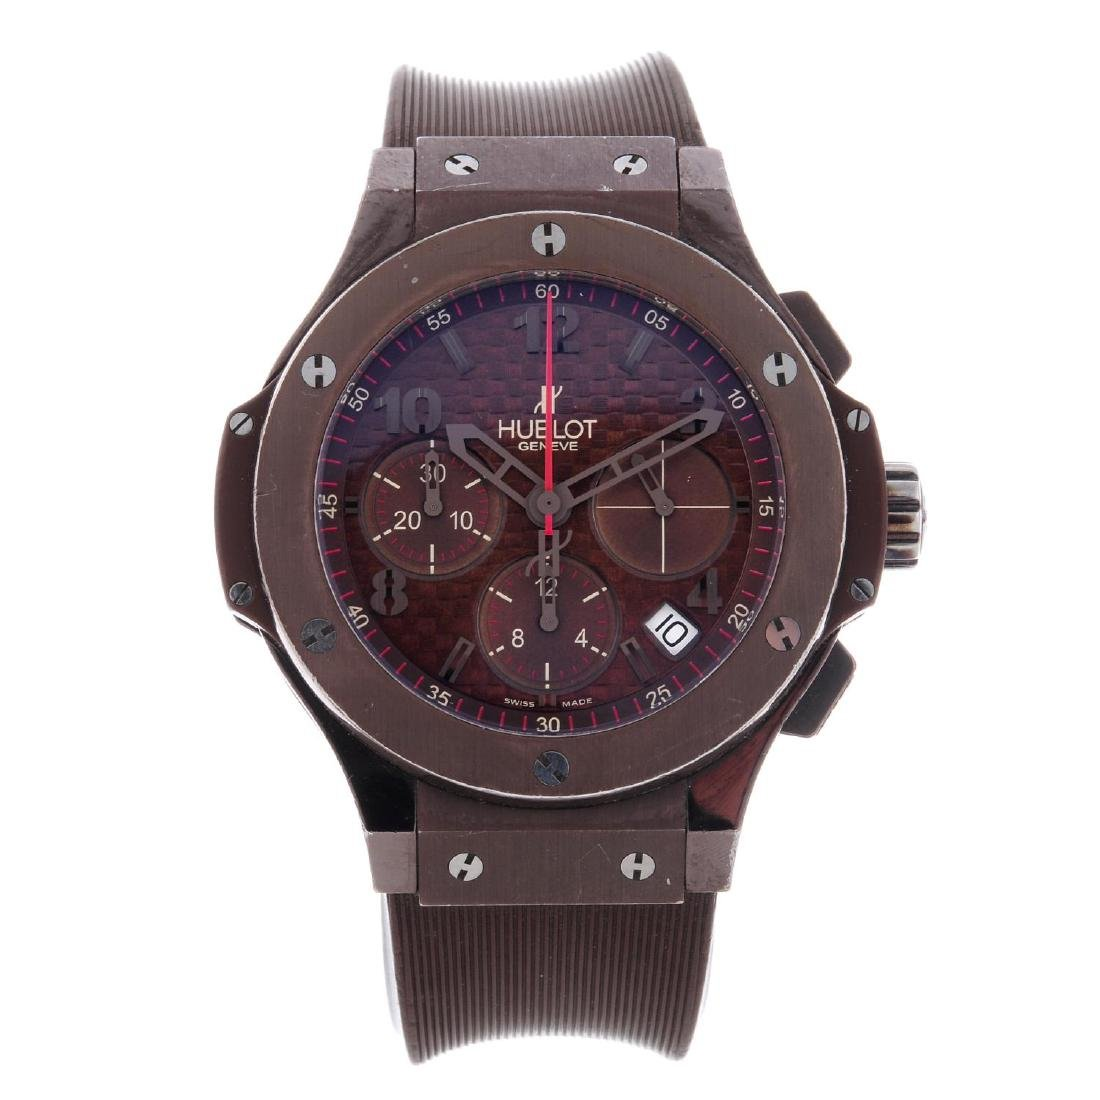 HUBLOT - a limited edition gentleman's Big Bang